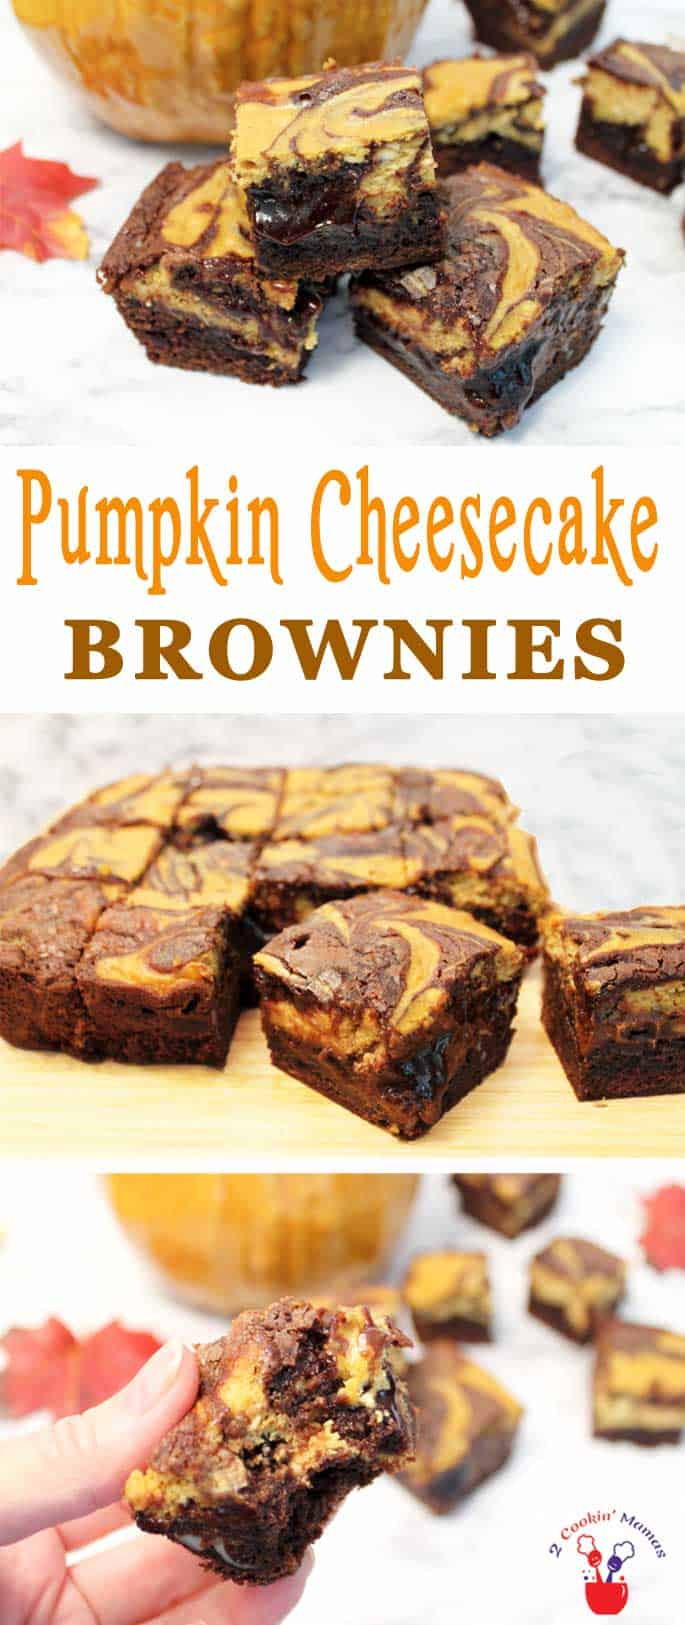 Our Pumpkin Cheesecake Brownies are your favorite chocolaty brownies accented with rich, creamy pumpkin cheesecake. It\'s the perfect fall treat!  #dessert #pumpkin #cheesecakebrownies #falldessert #quickandeasydessert #brownies